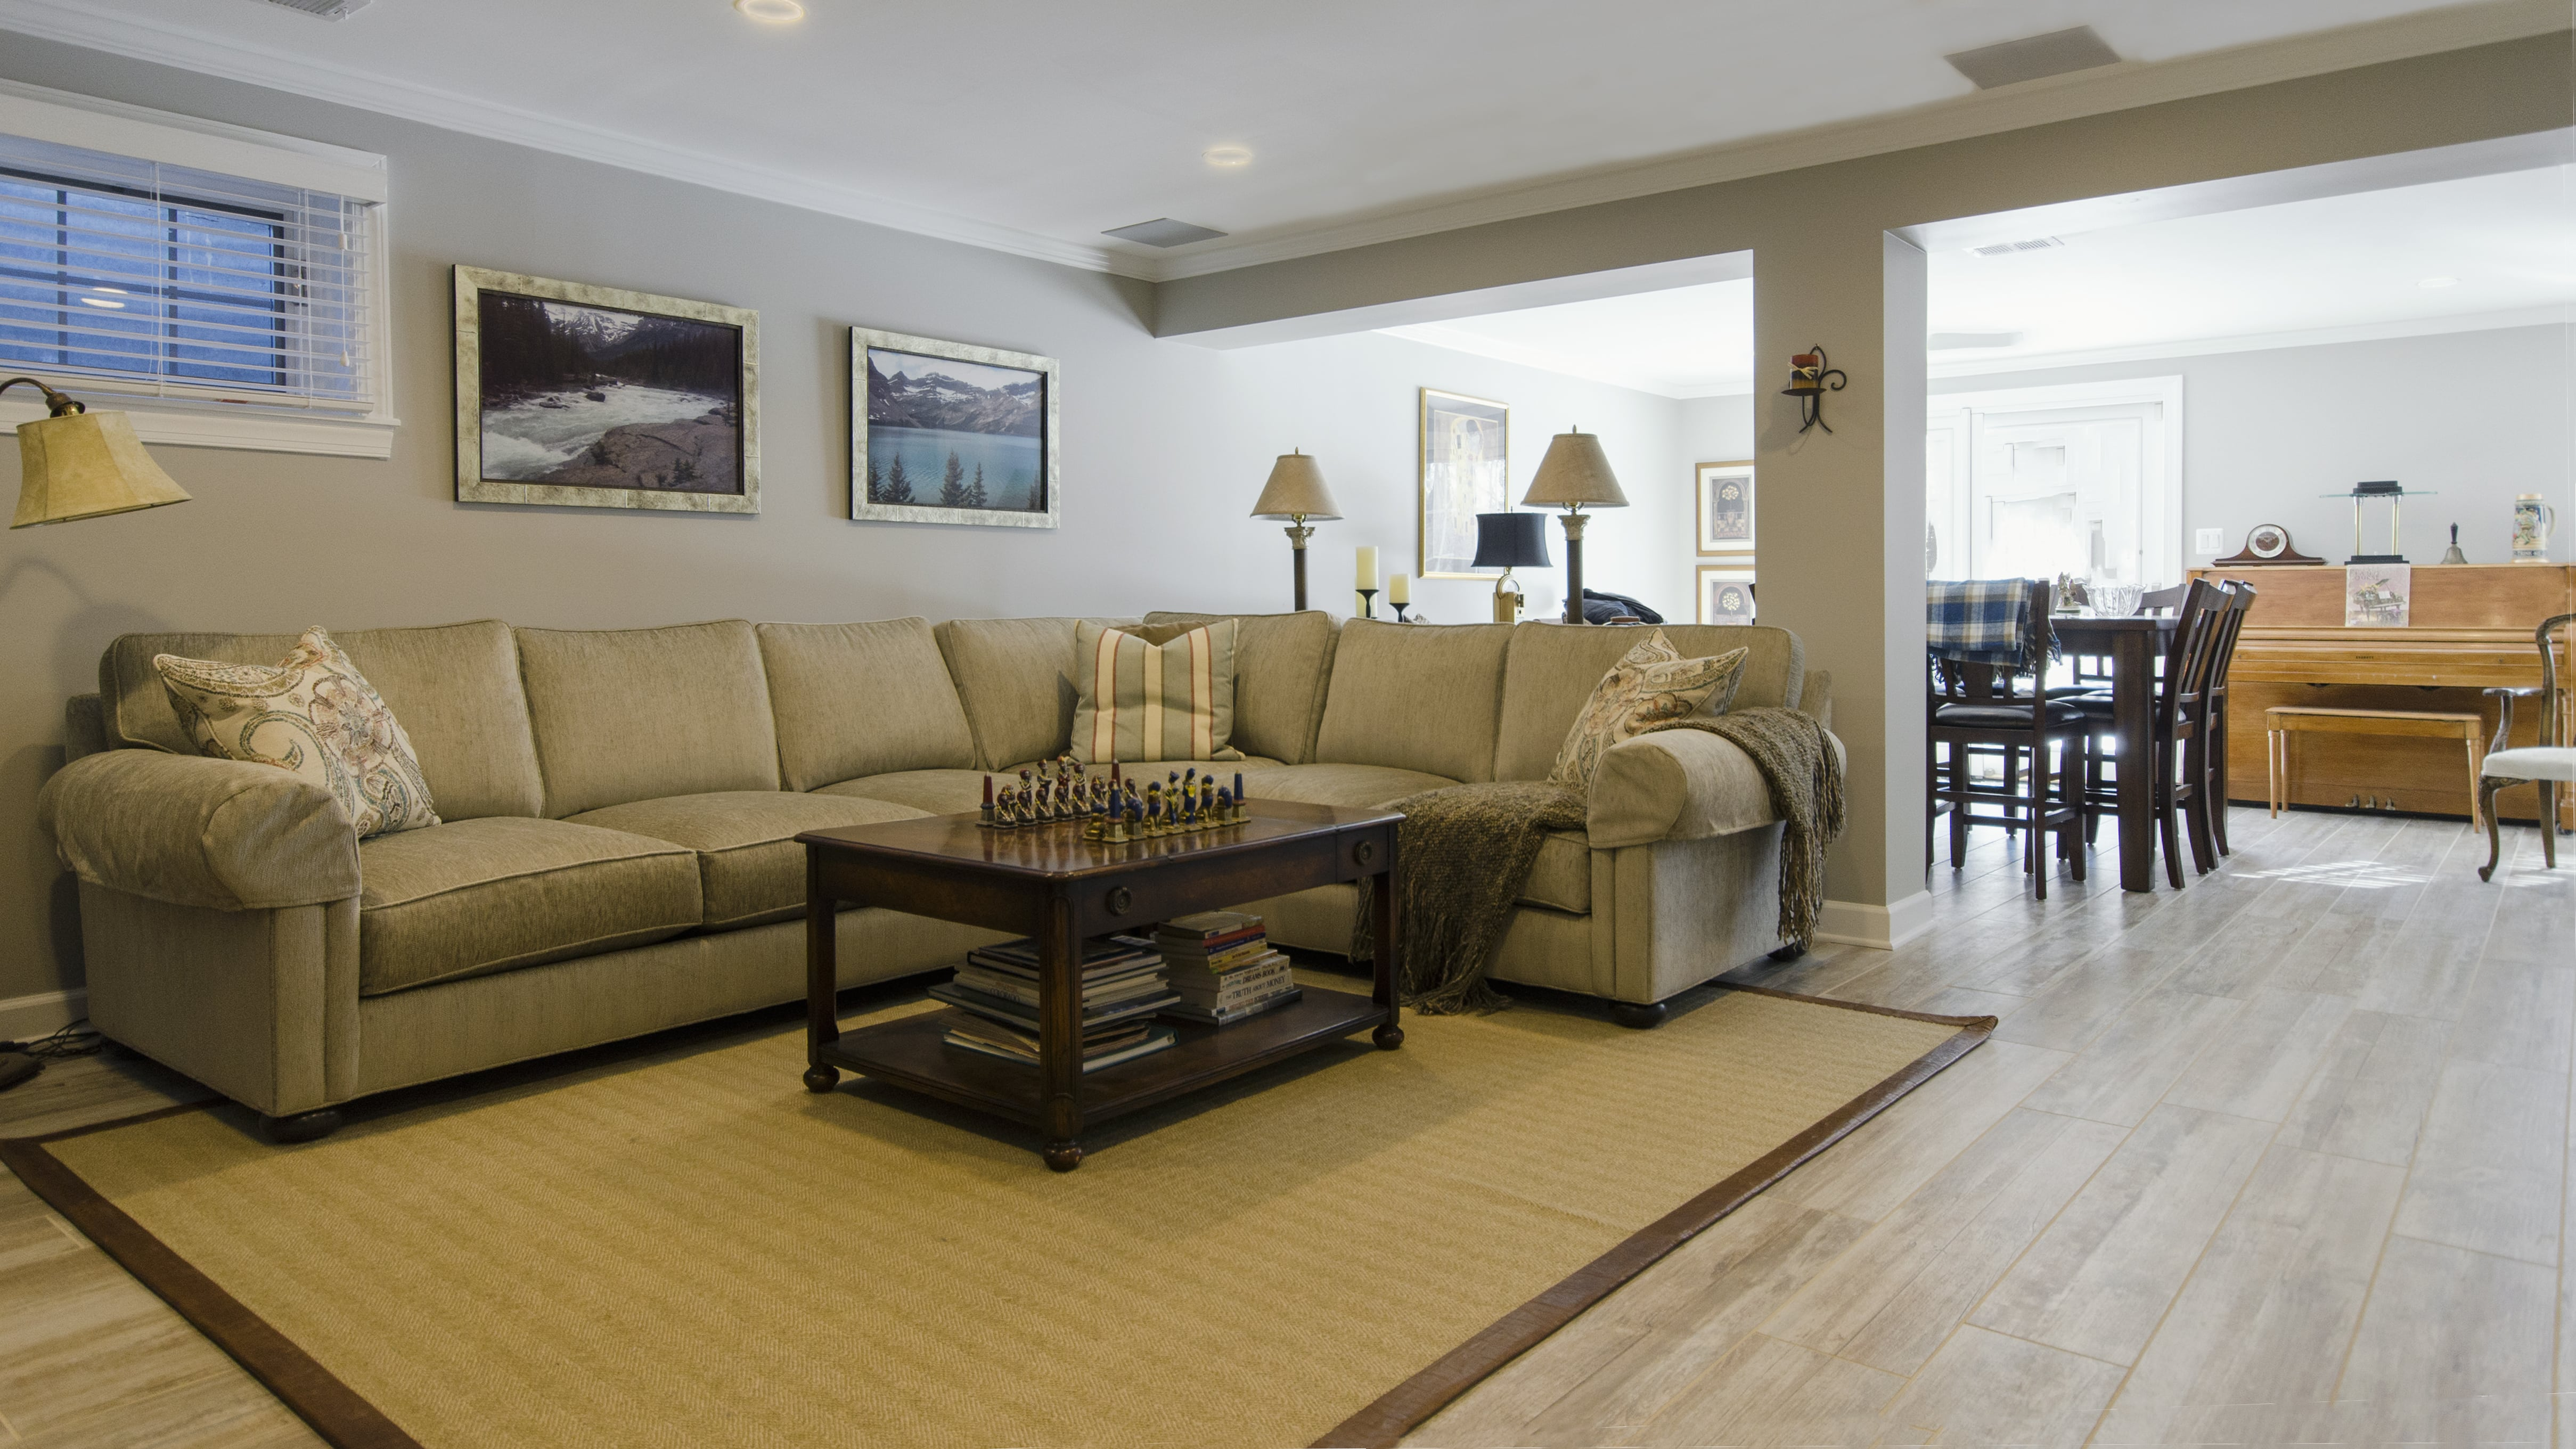 remove adobestock stain vacuuming kitchen tile cleaning fix stone floor clean improve tips how any it floors ceramic to